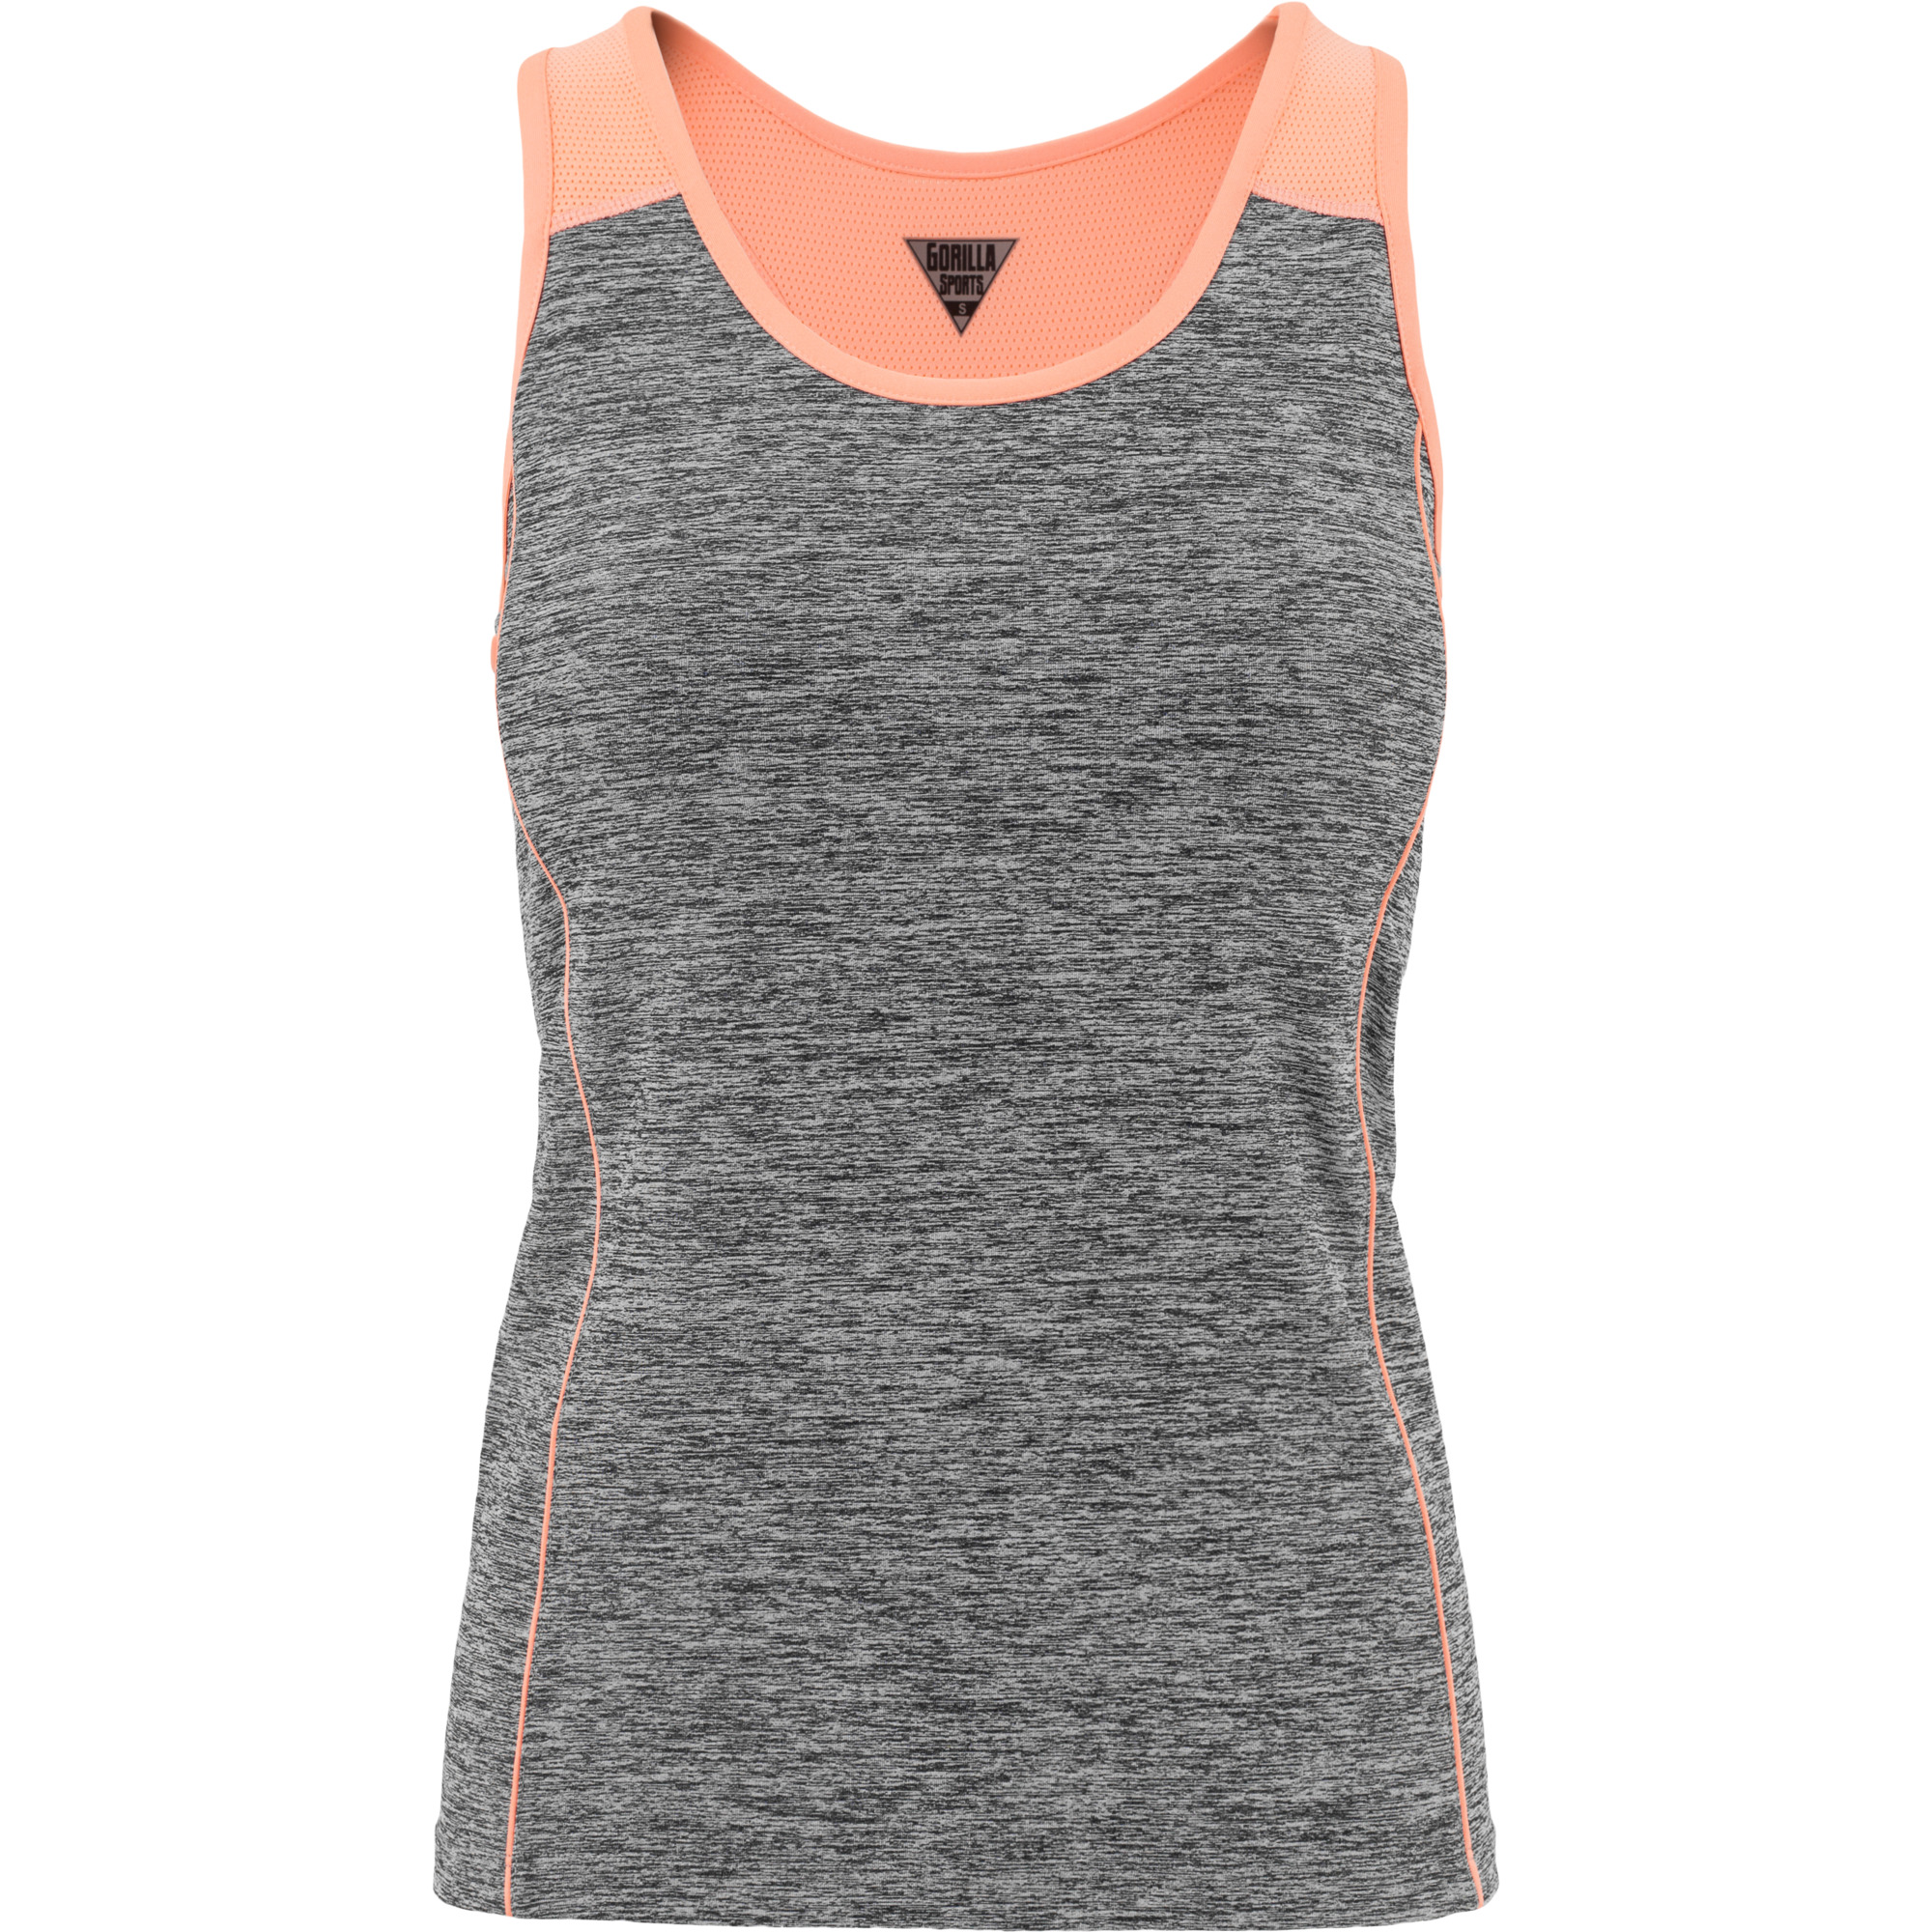 Tank Top für Damen in Grau M